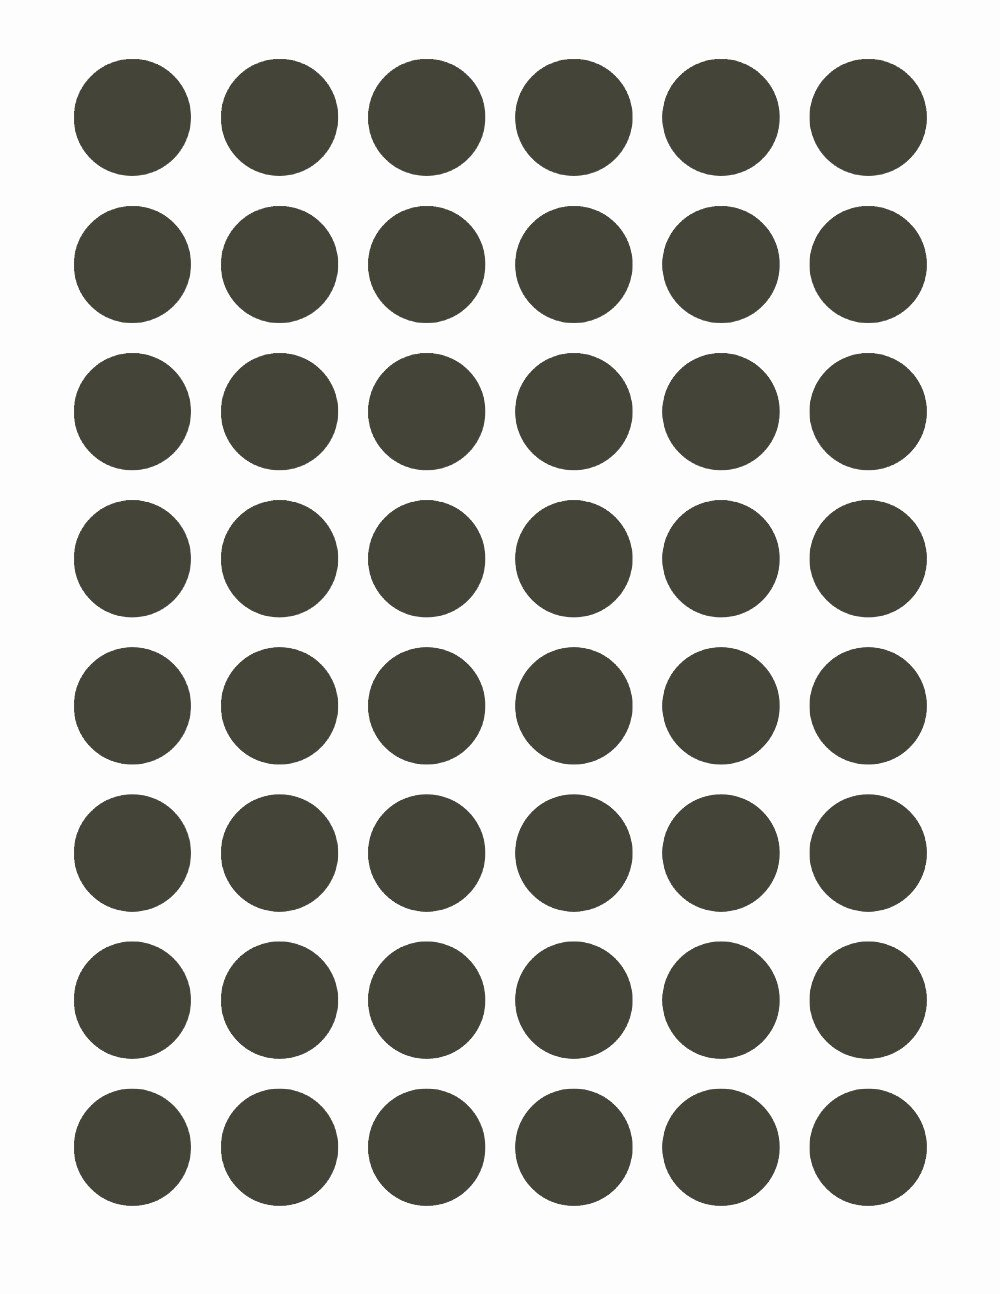 One Inch Circle Template Unique Psd Template Bottle Cap 48 Circles 1 Inch Diameter